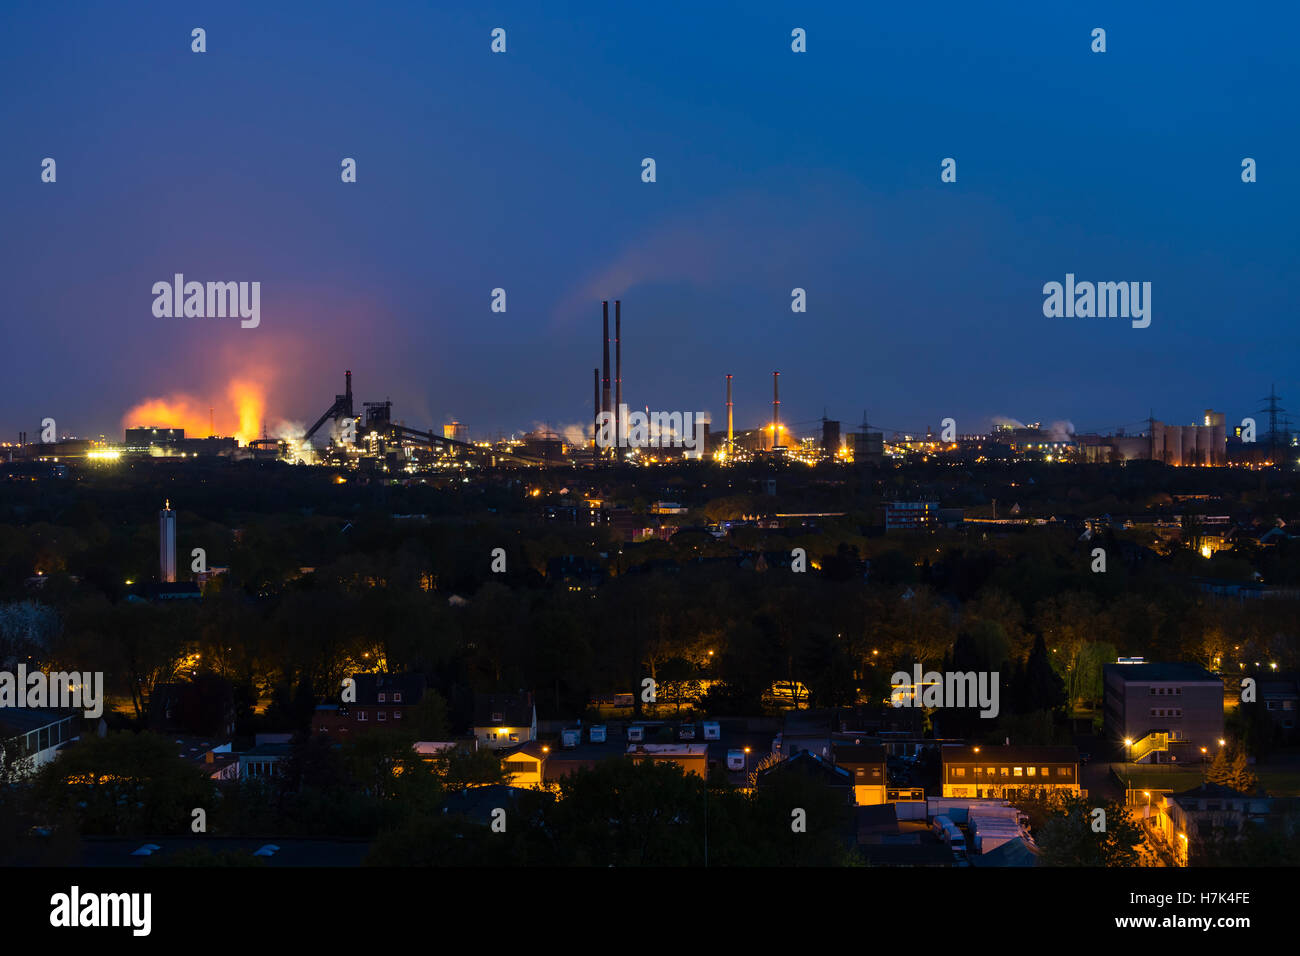 View of a large coking and steel plant in Duisburg, Germany in the night with tapping resulting in the red glow. - Stock Image